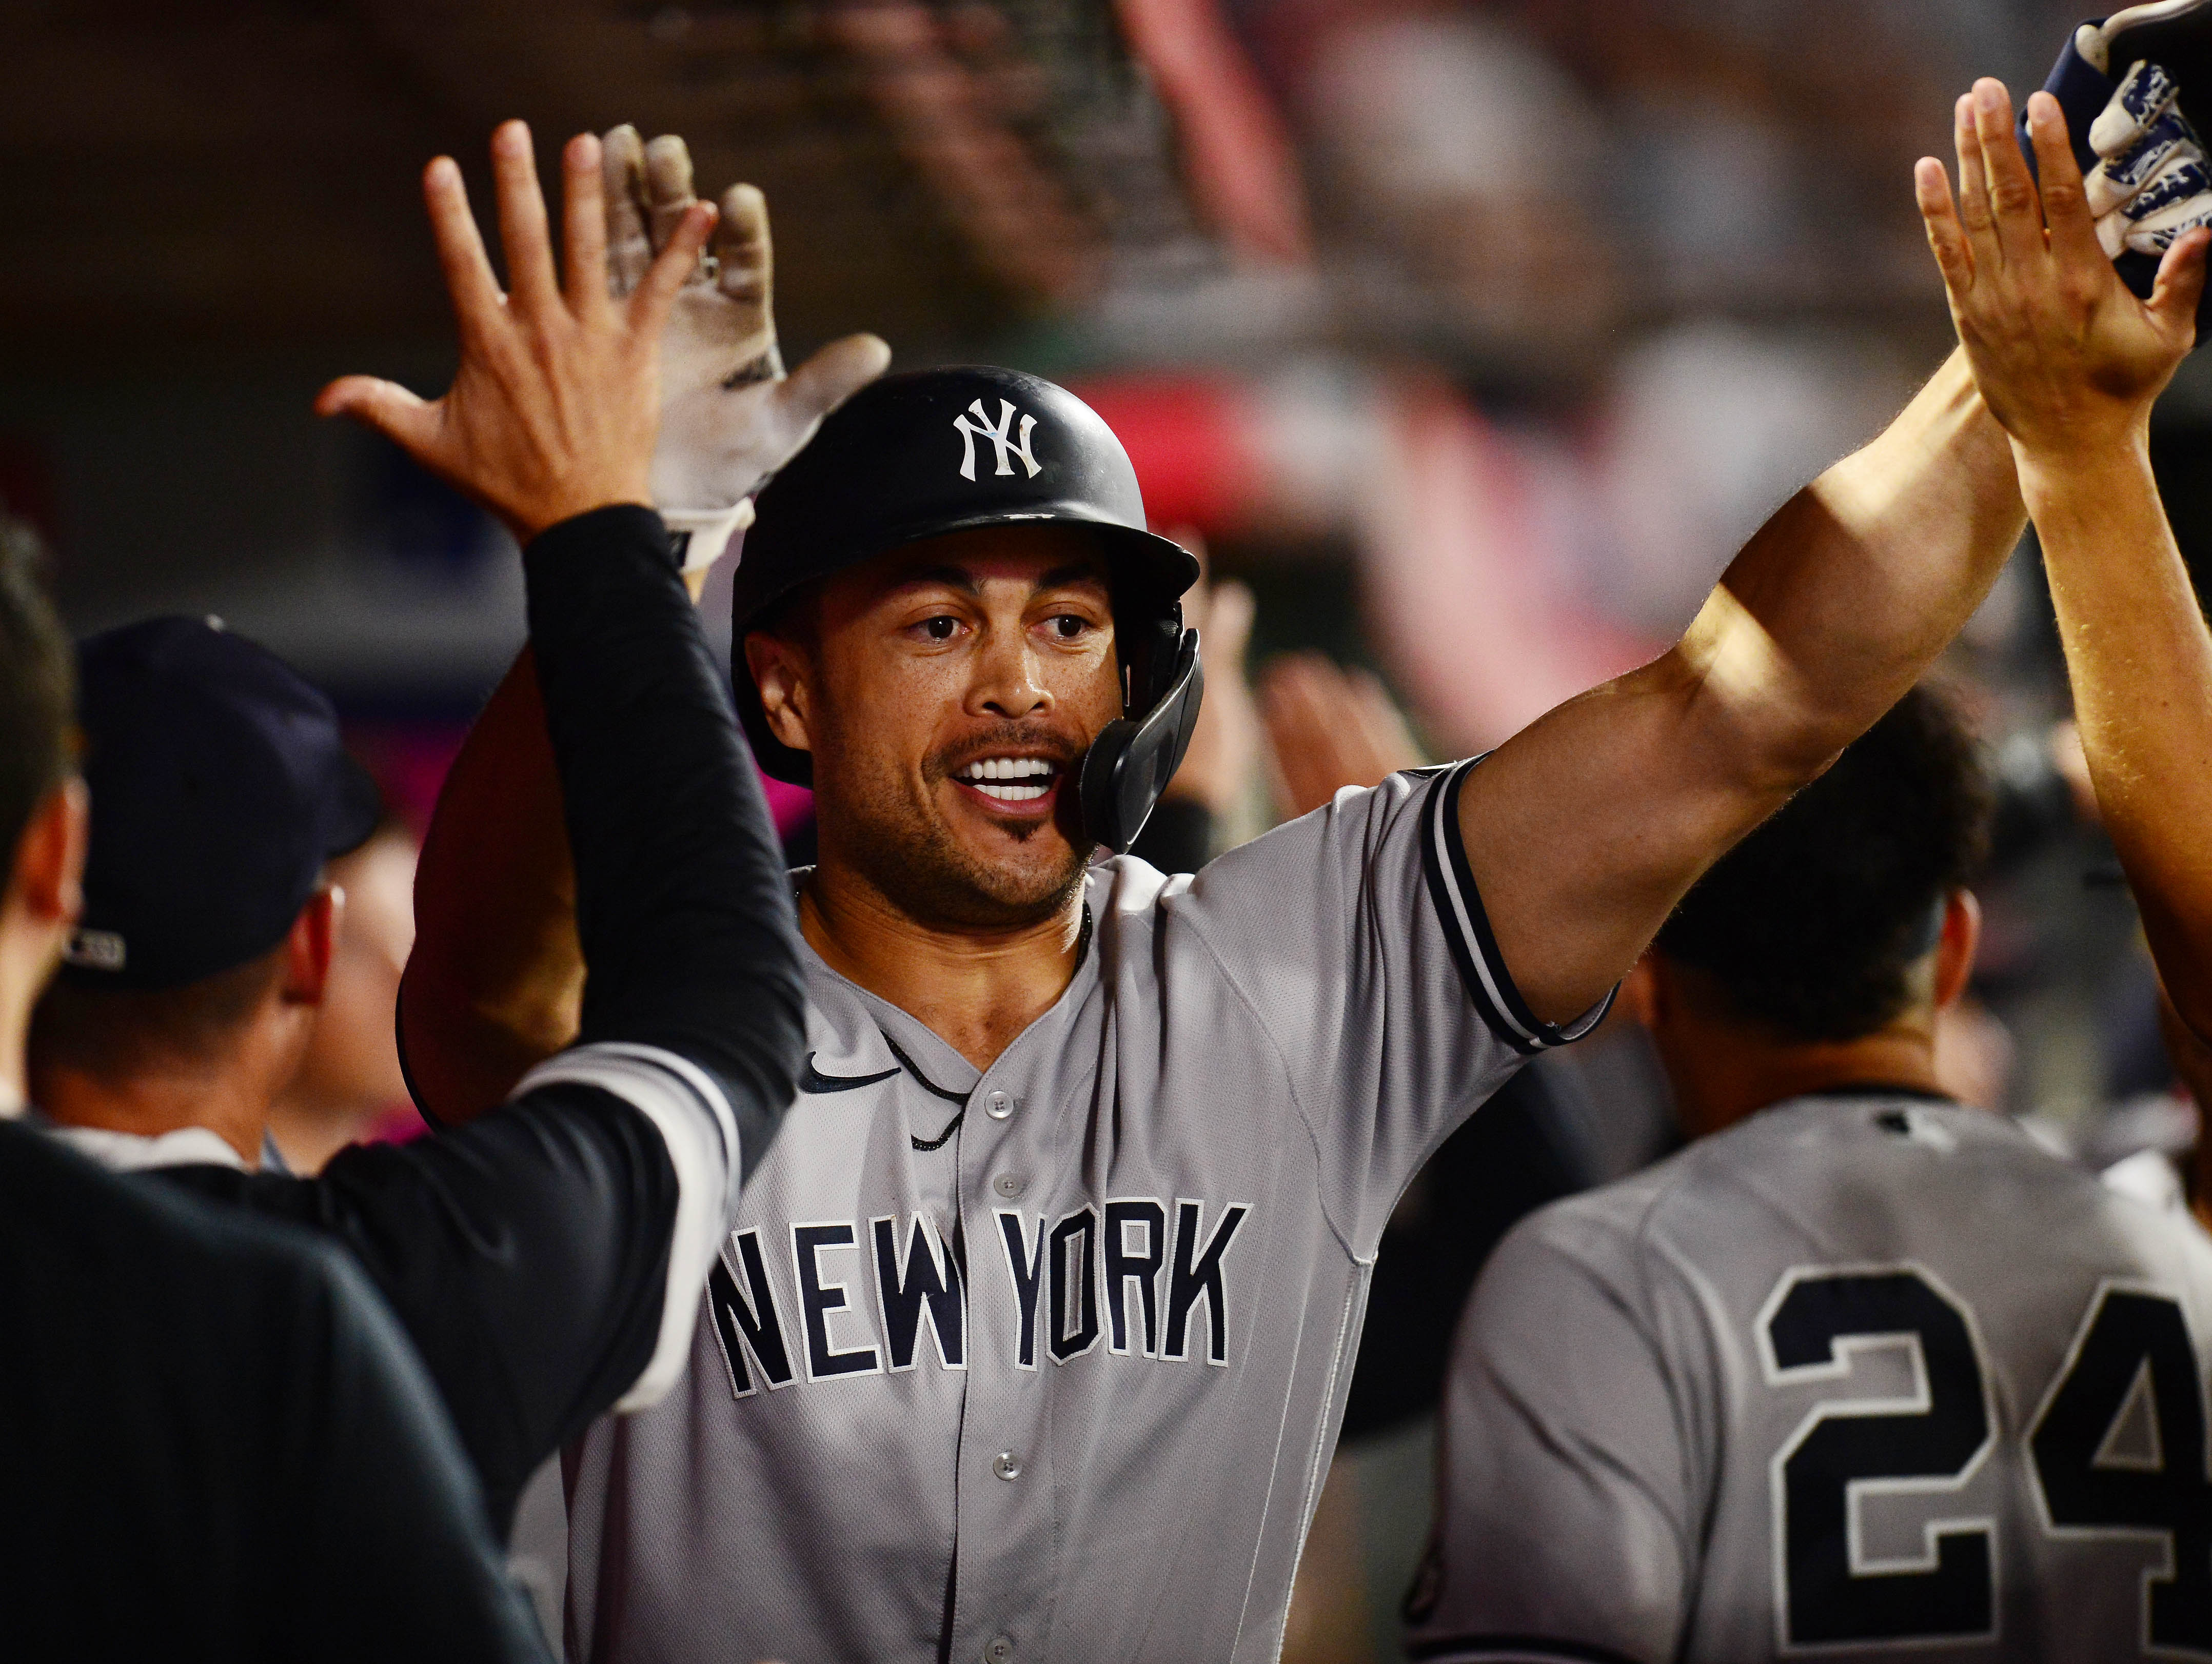 New York Yankees designated hitter Giancarlo Stanton (27) is greeted after hitting a two run home run against the Los Angeles Angels during the seventh inning at Angel Stadium